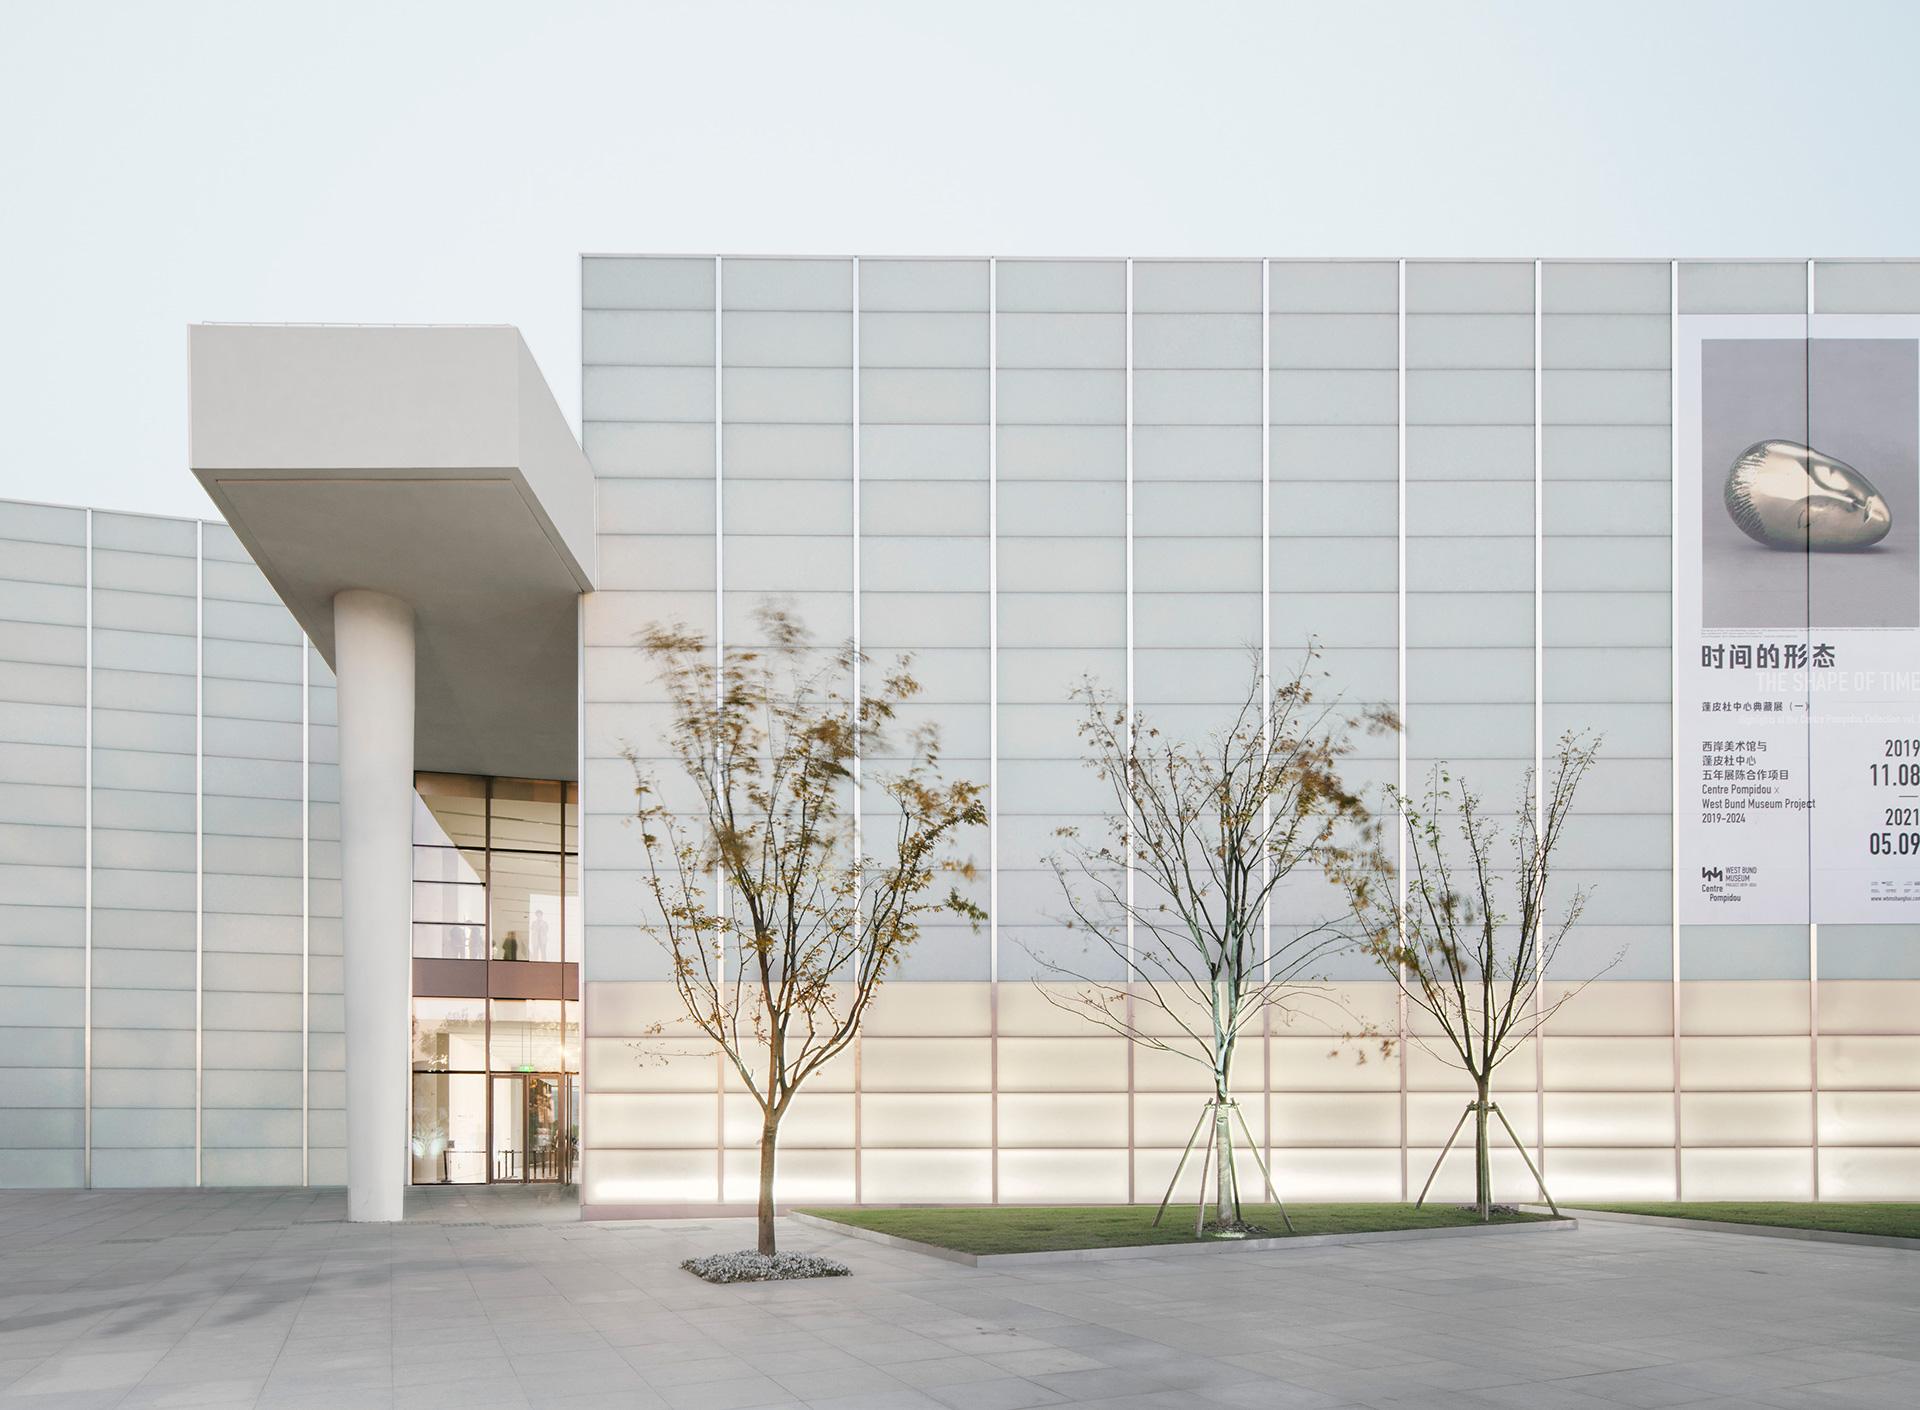 Entrance from the streets | West Bund Museum | David Chipperfield Architects Berlin and Shanghai| STIRworld